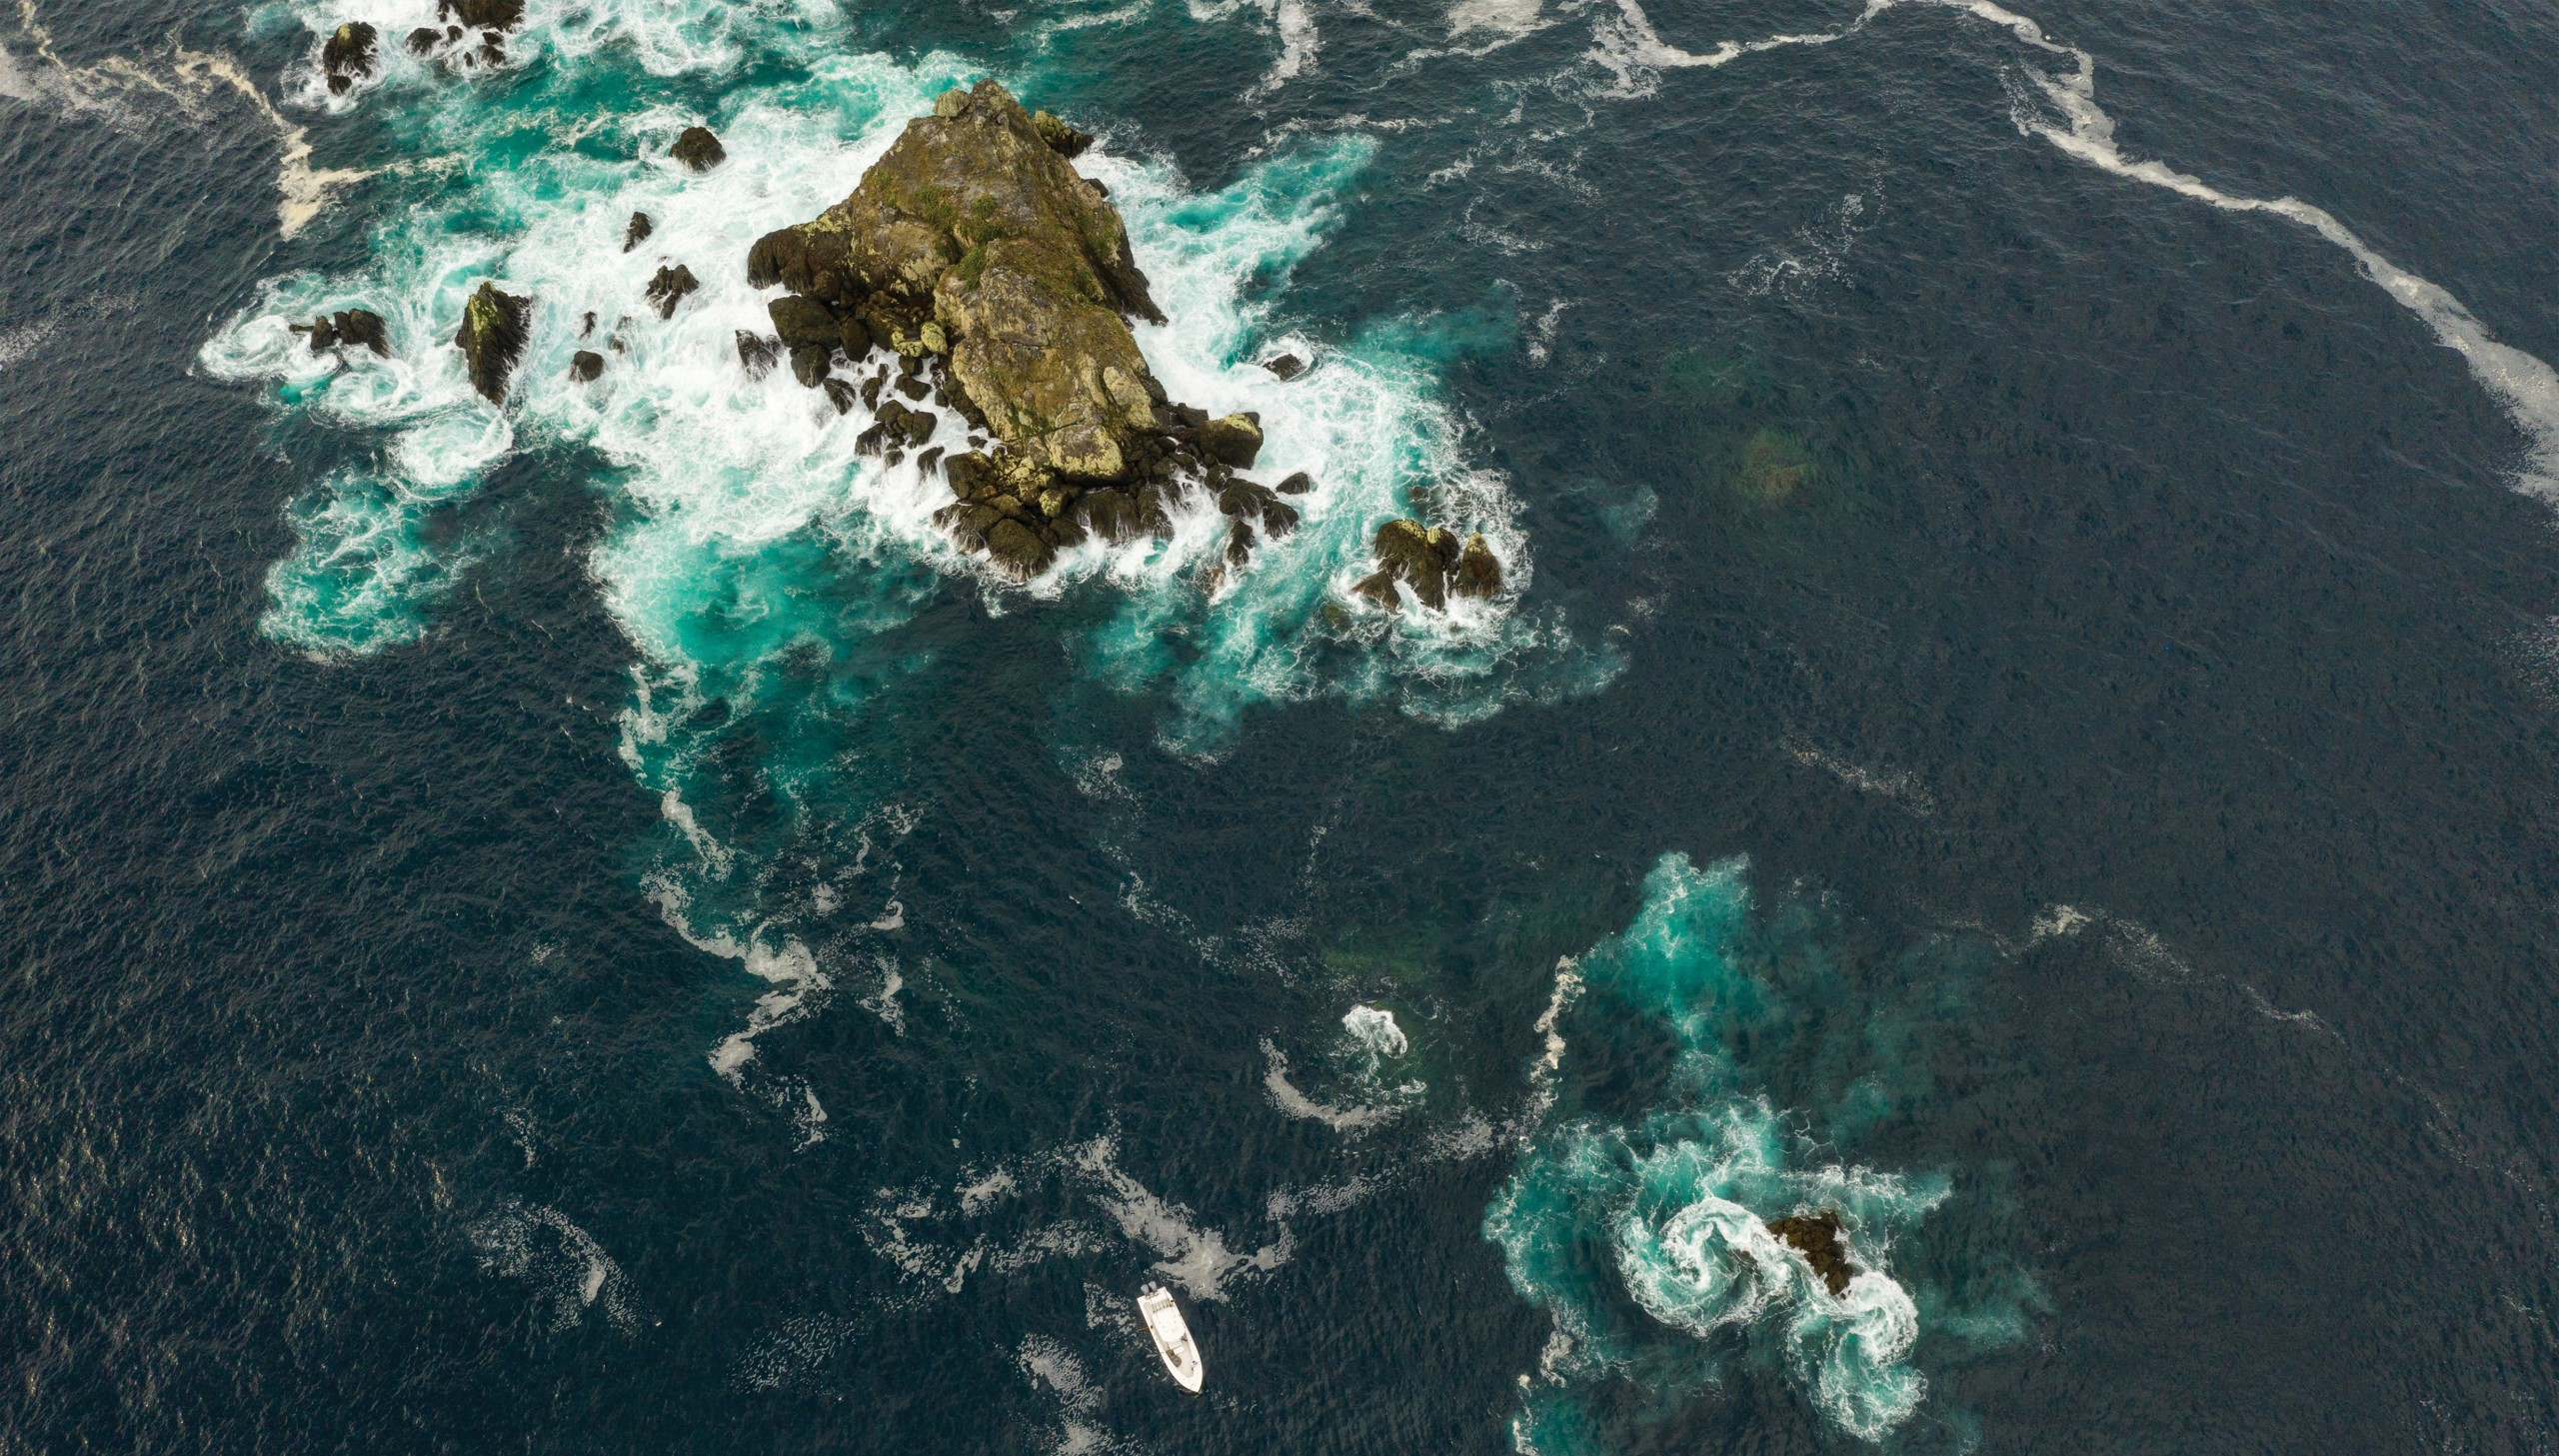 Aerial view of rocks and ocean